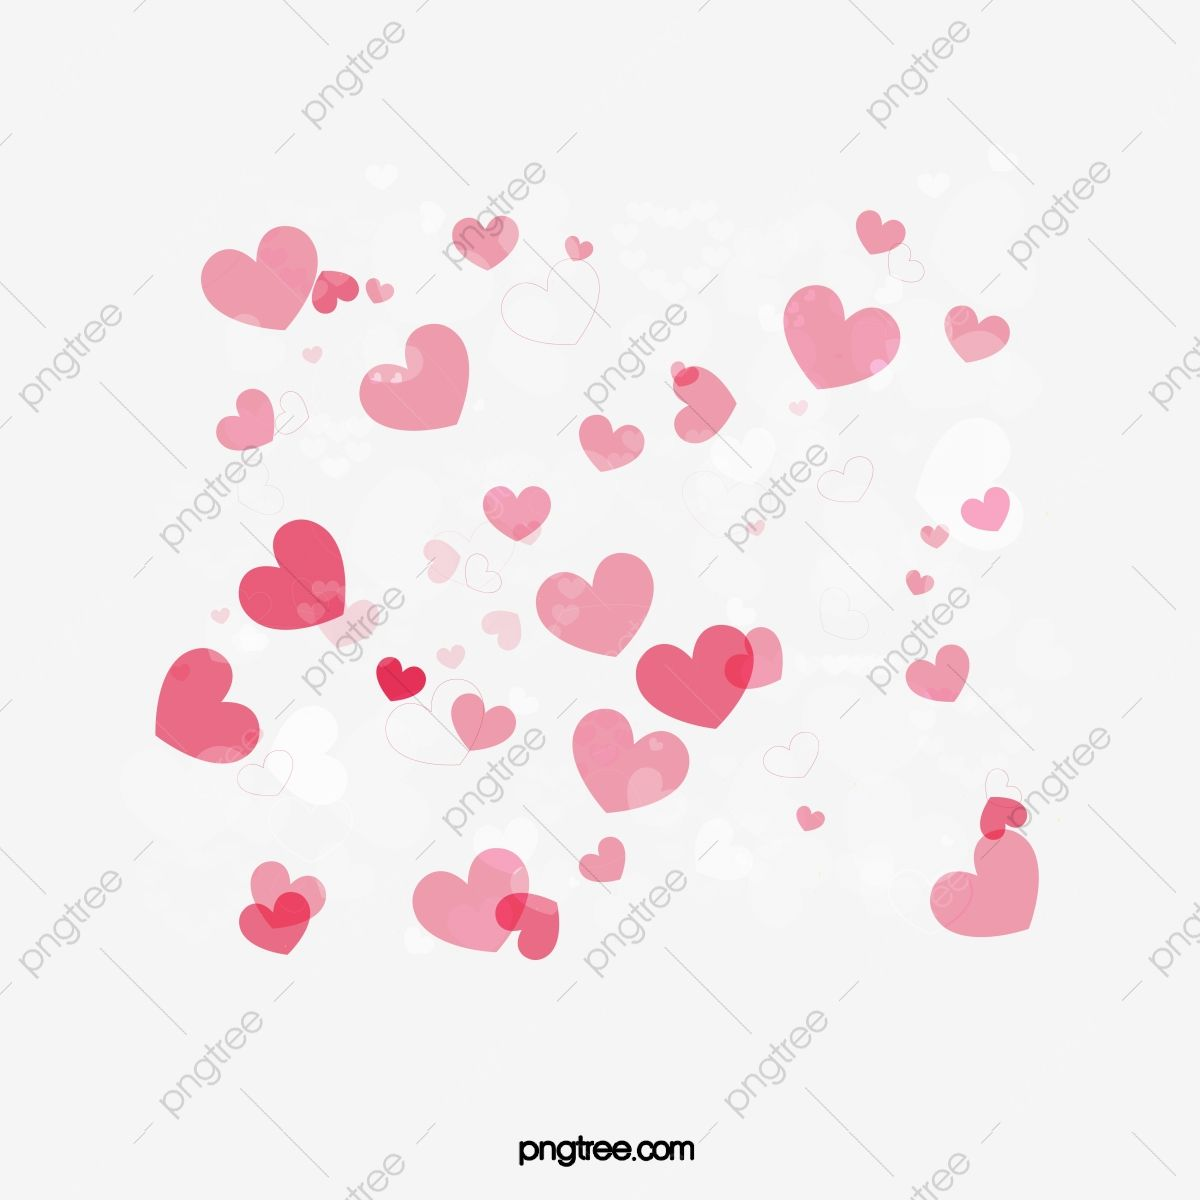 Pink Heart Pepero Day Pink Heart Heart Crown Png And Vector With Transparent Background For Free Download Pink Heart Valentines Day Background Pink Background